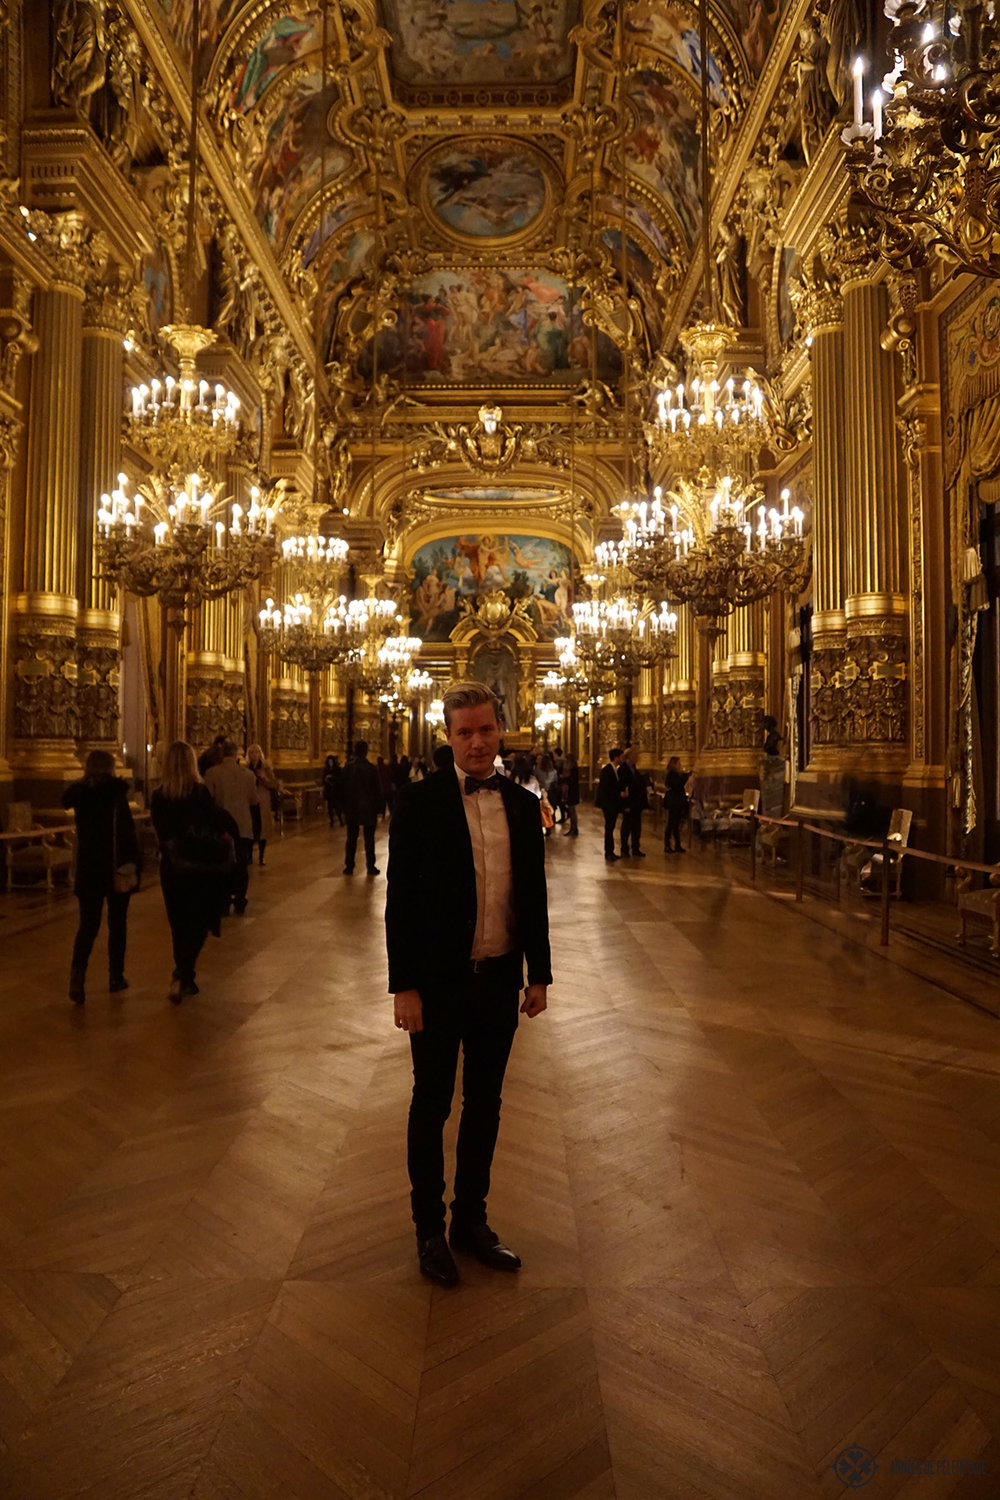 Ballroom at Opera Garnier, Paris